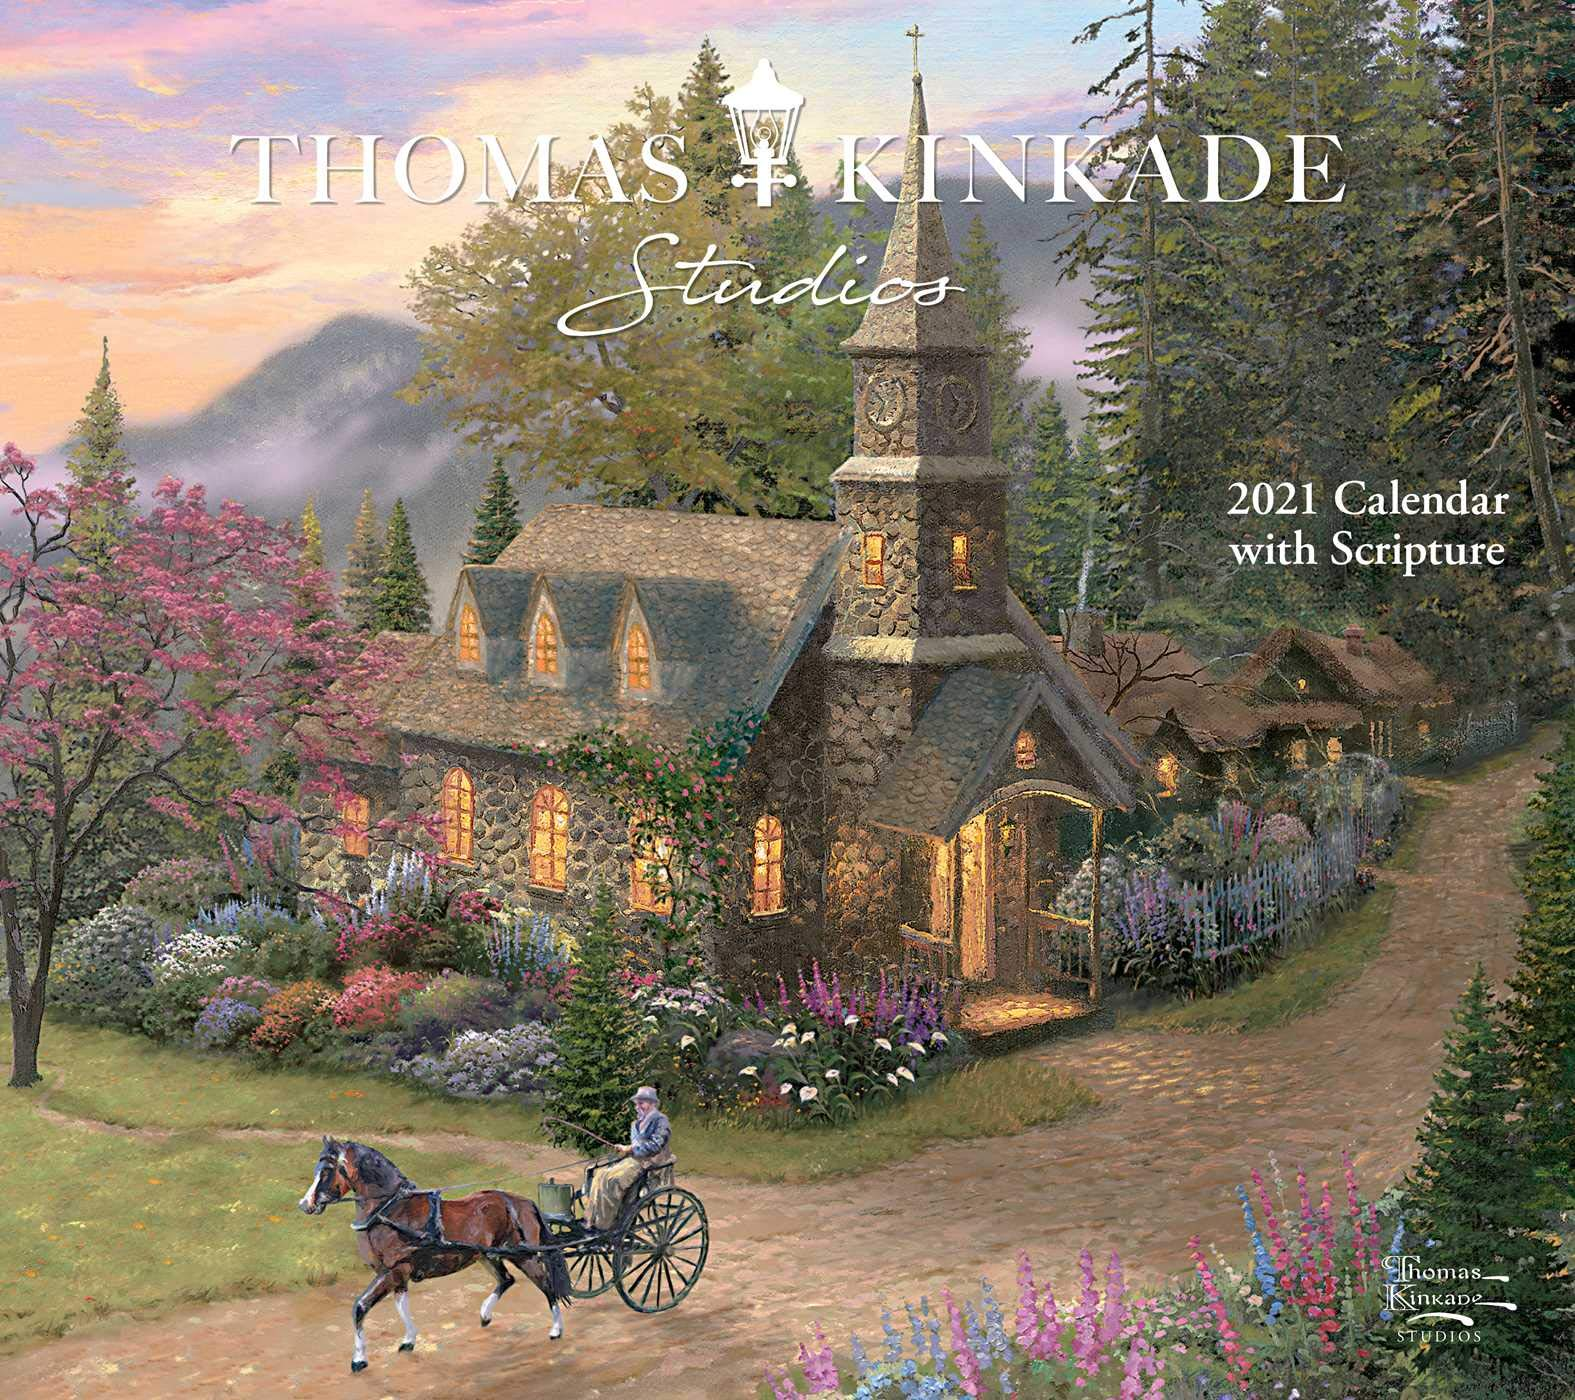 Thomas Kinkade Studios 2021 Deluxe Wall Calendar with Scripture